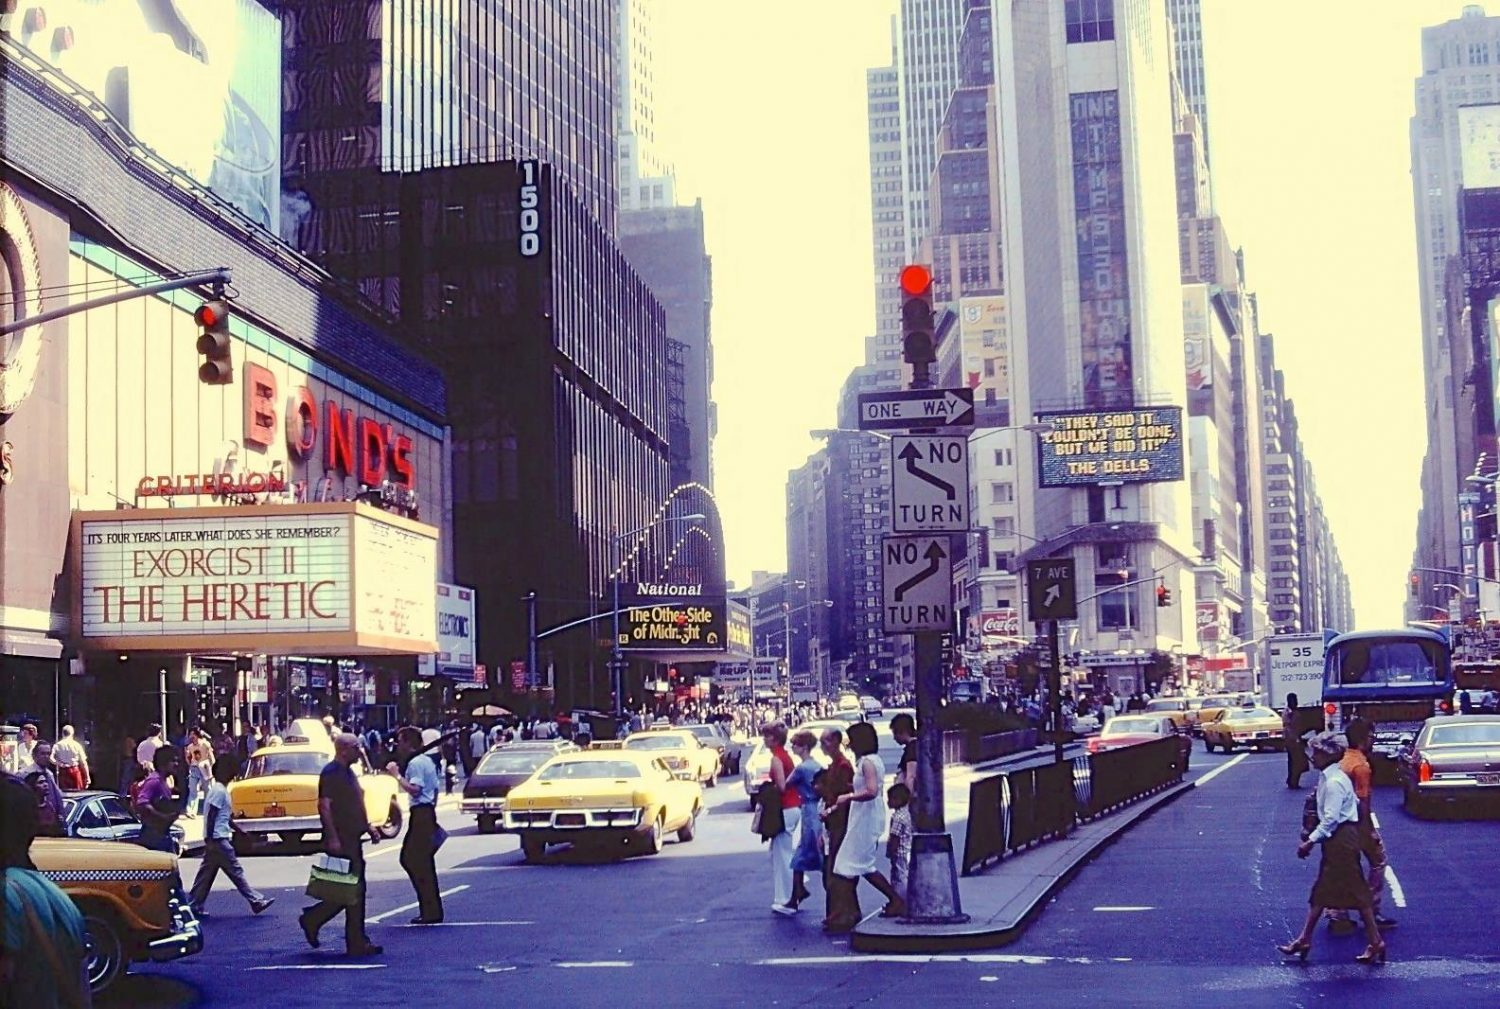 Life In 1970s New York Shown By 25+ Striking Images